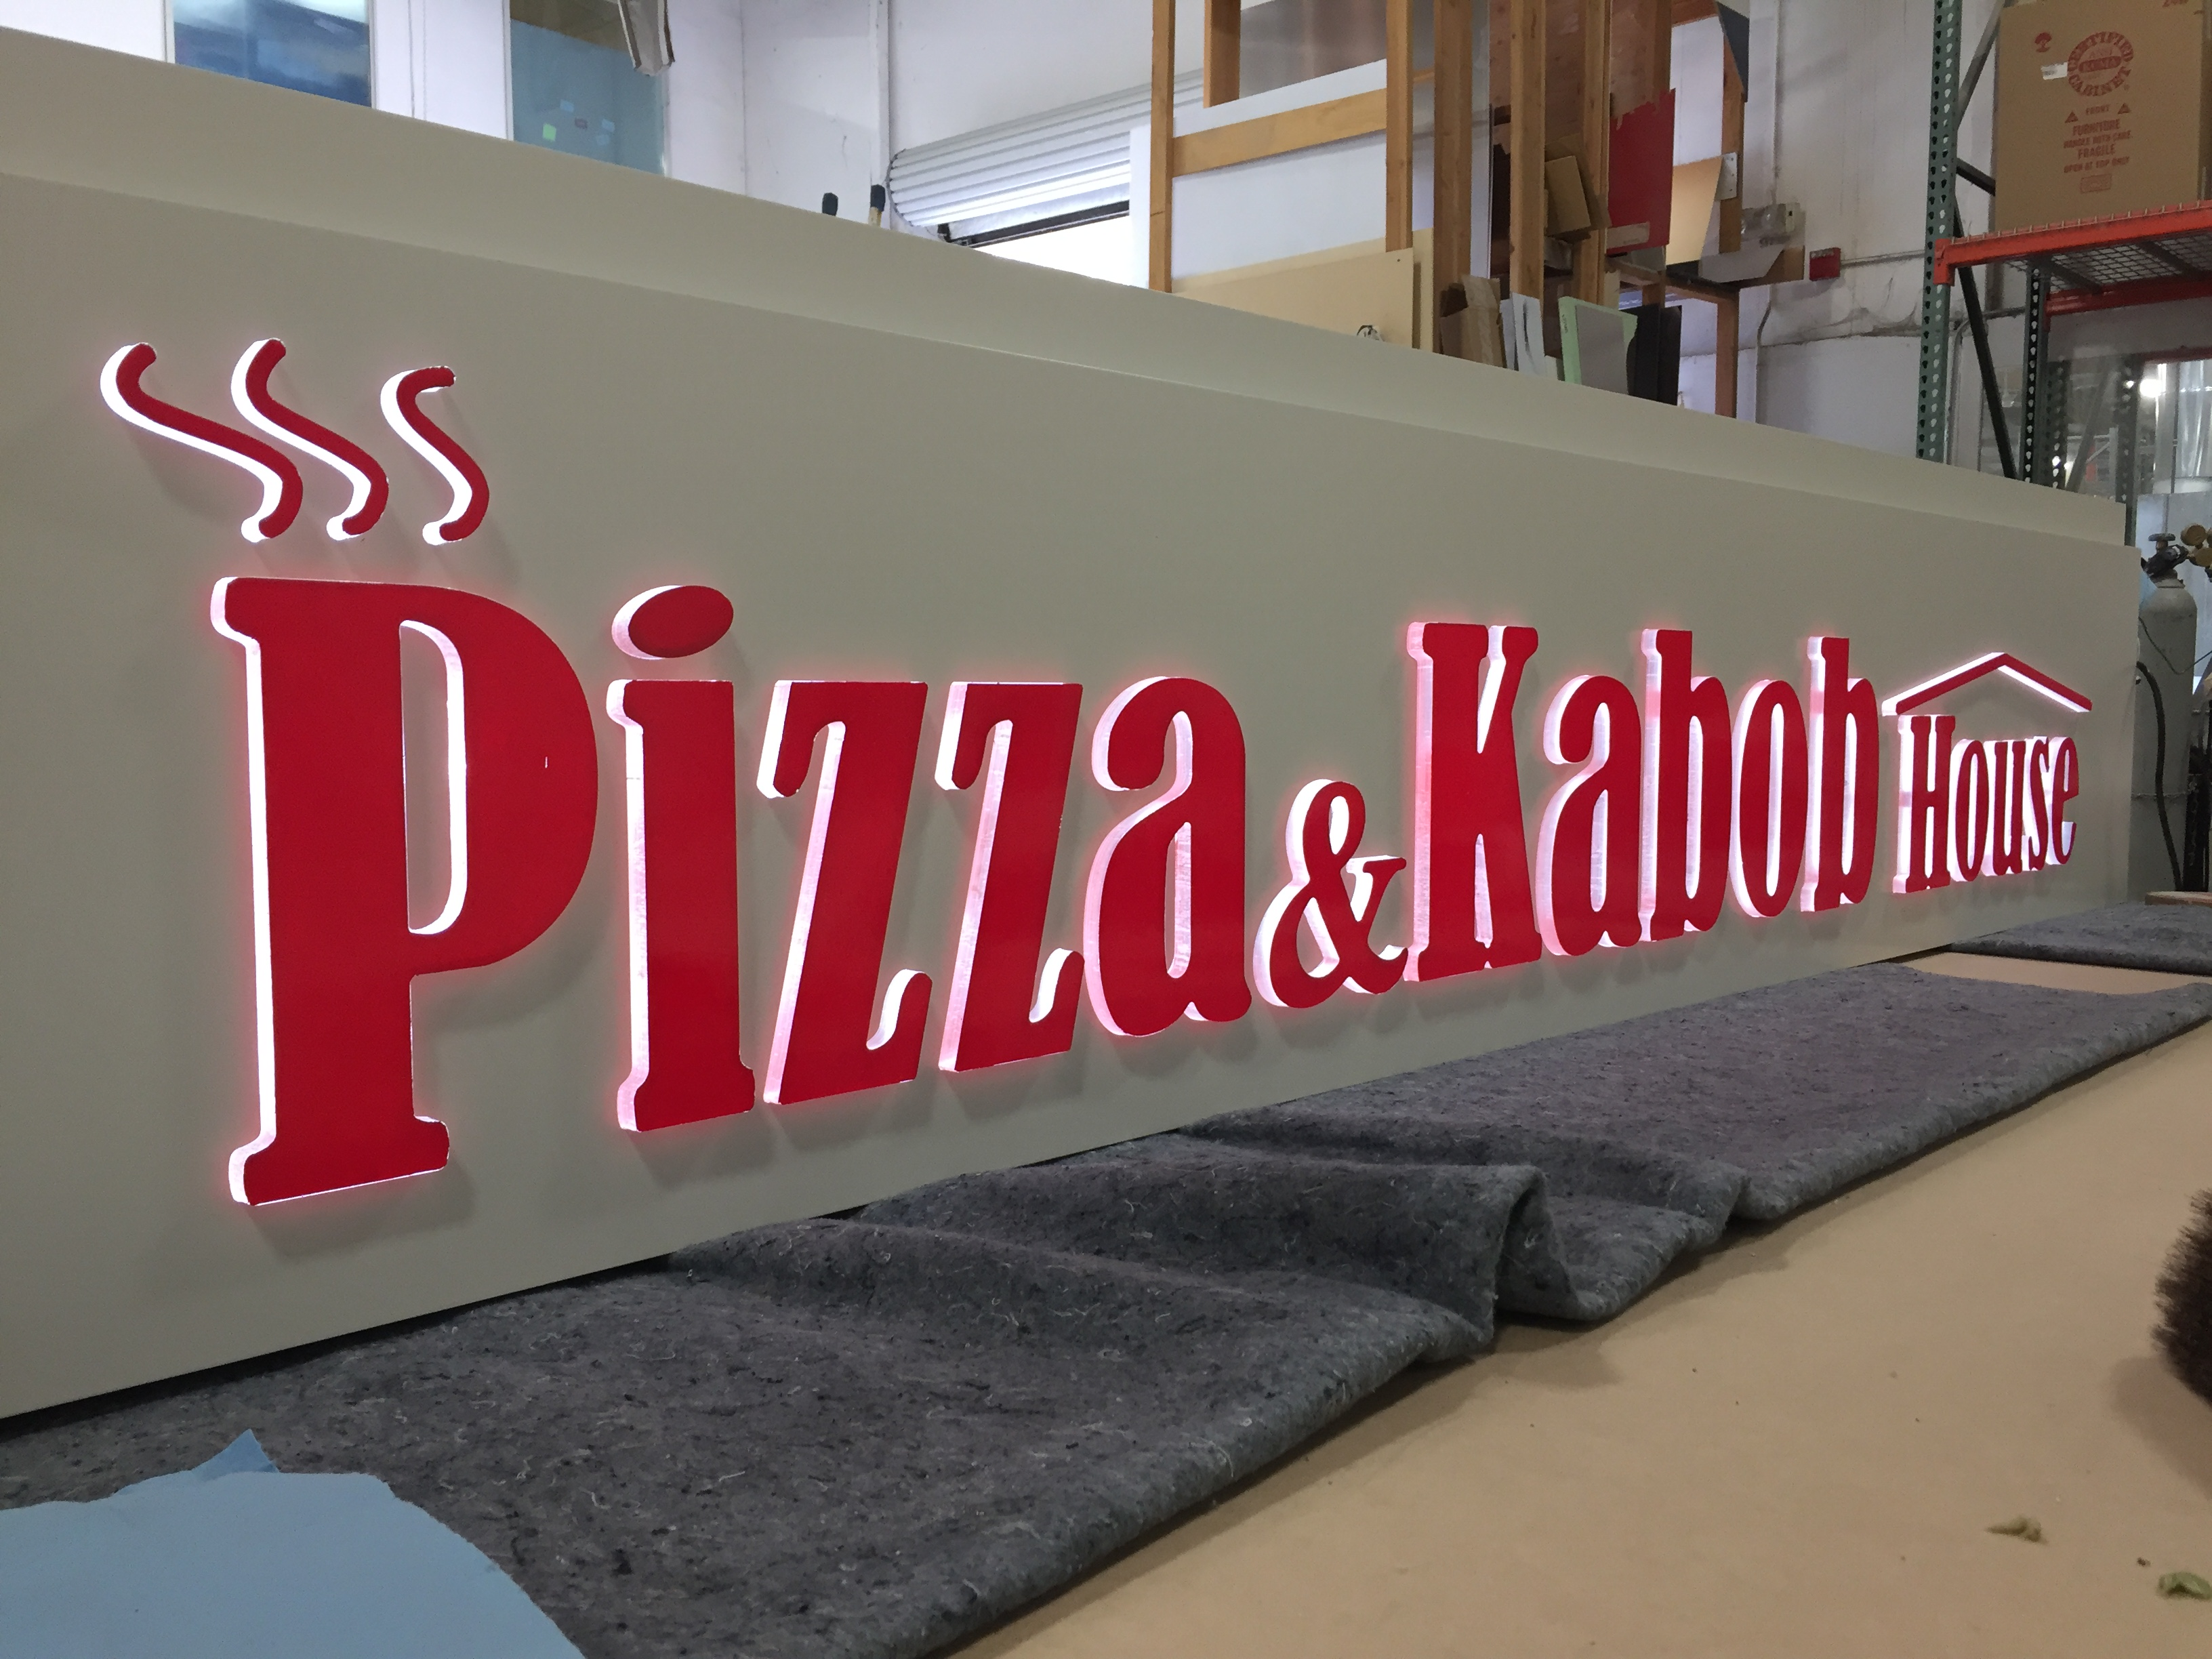 Acrylic LED sign for business in Pleasanton, CA